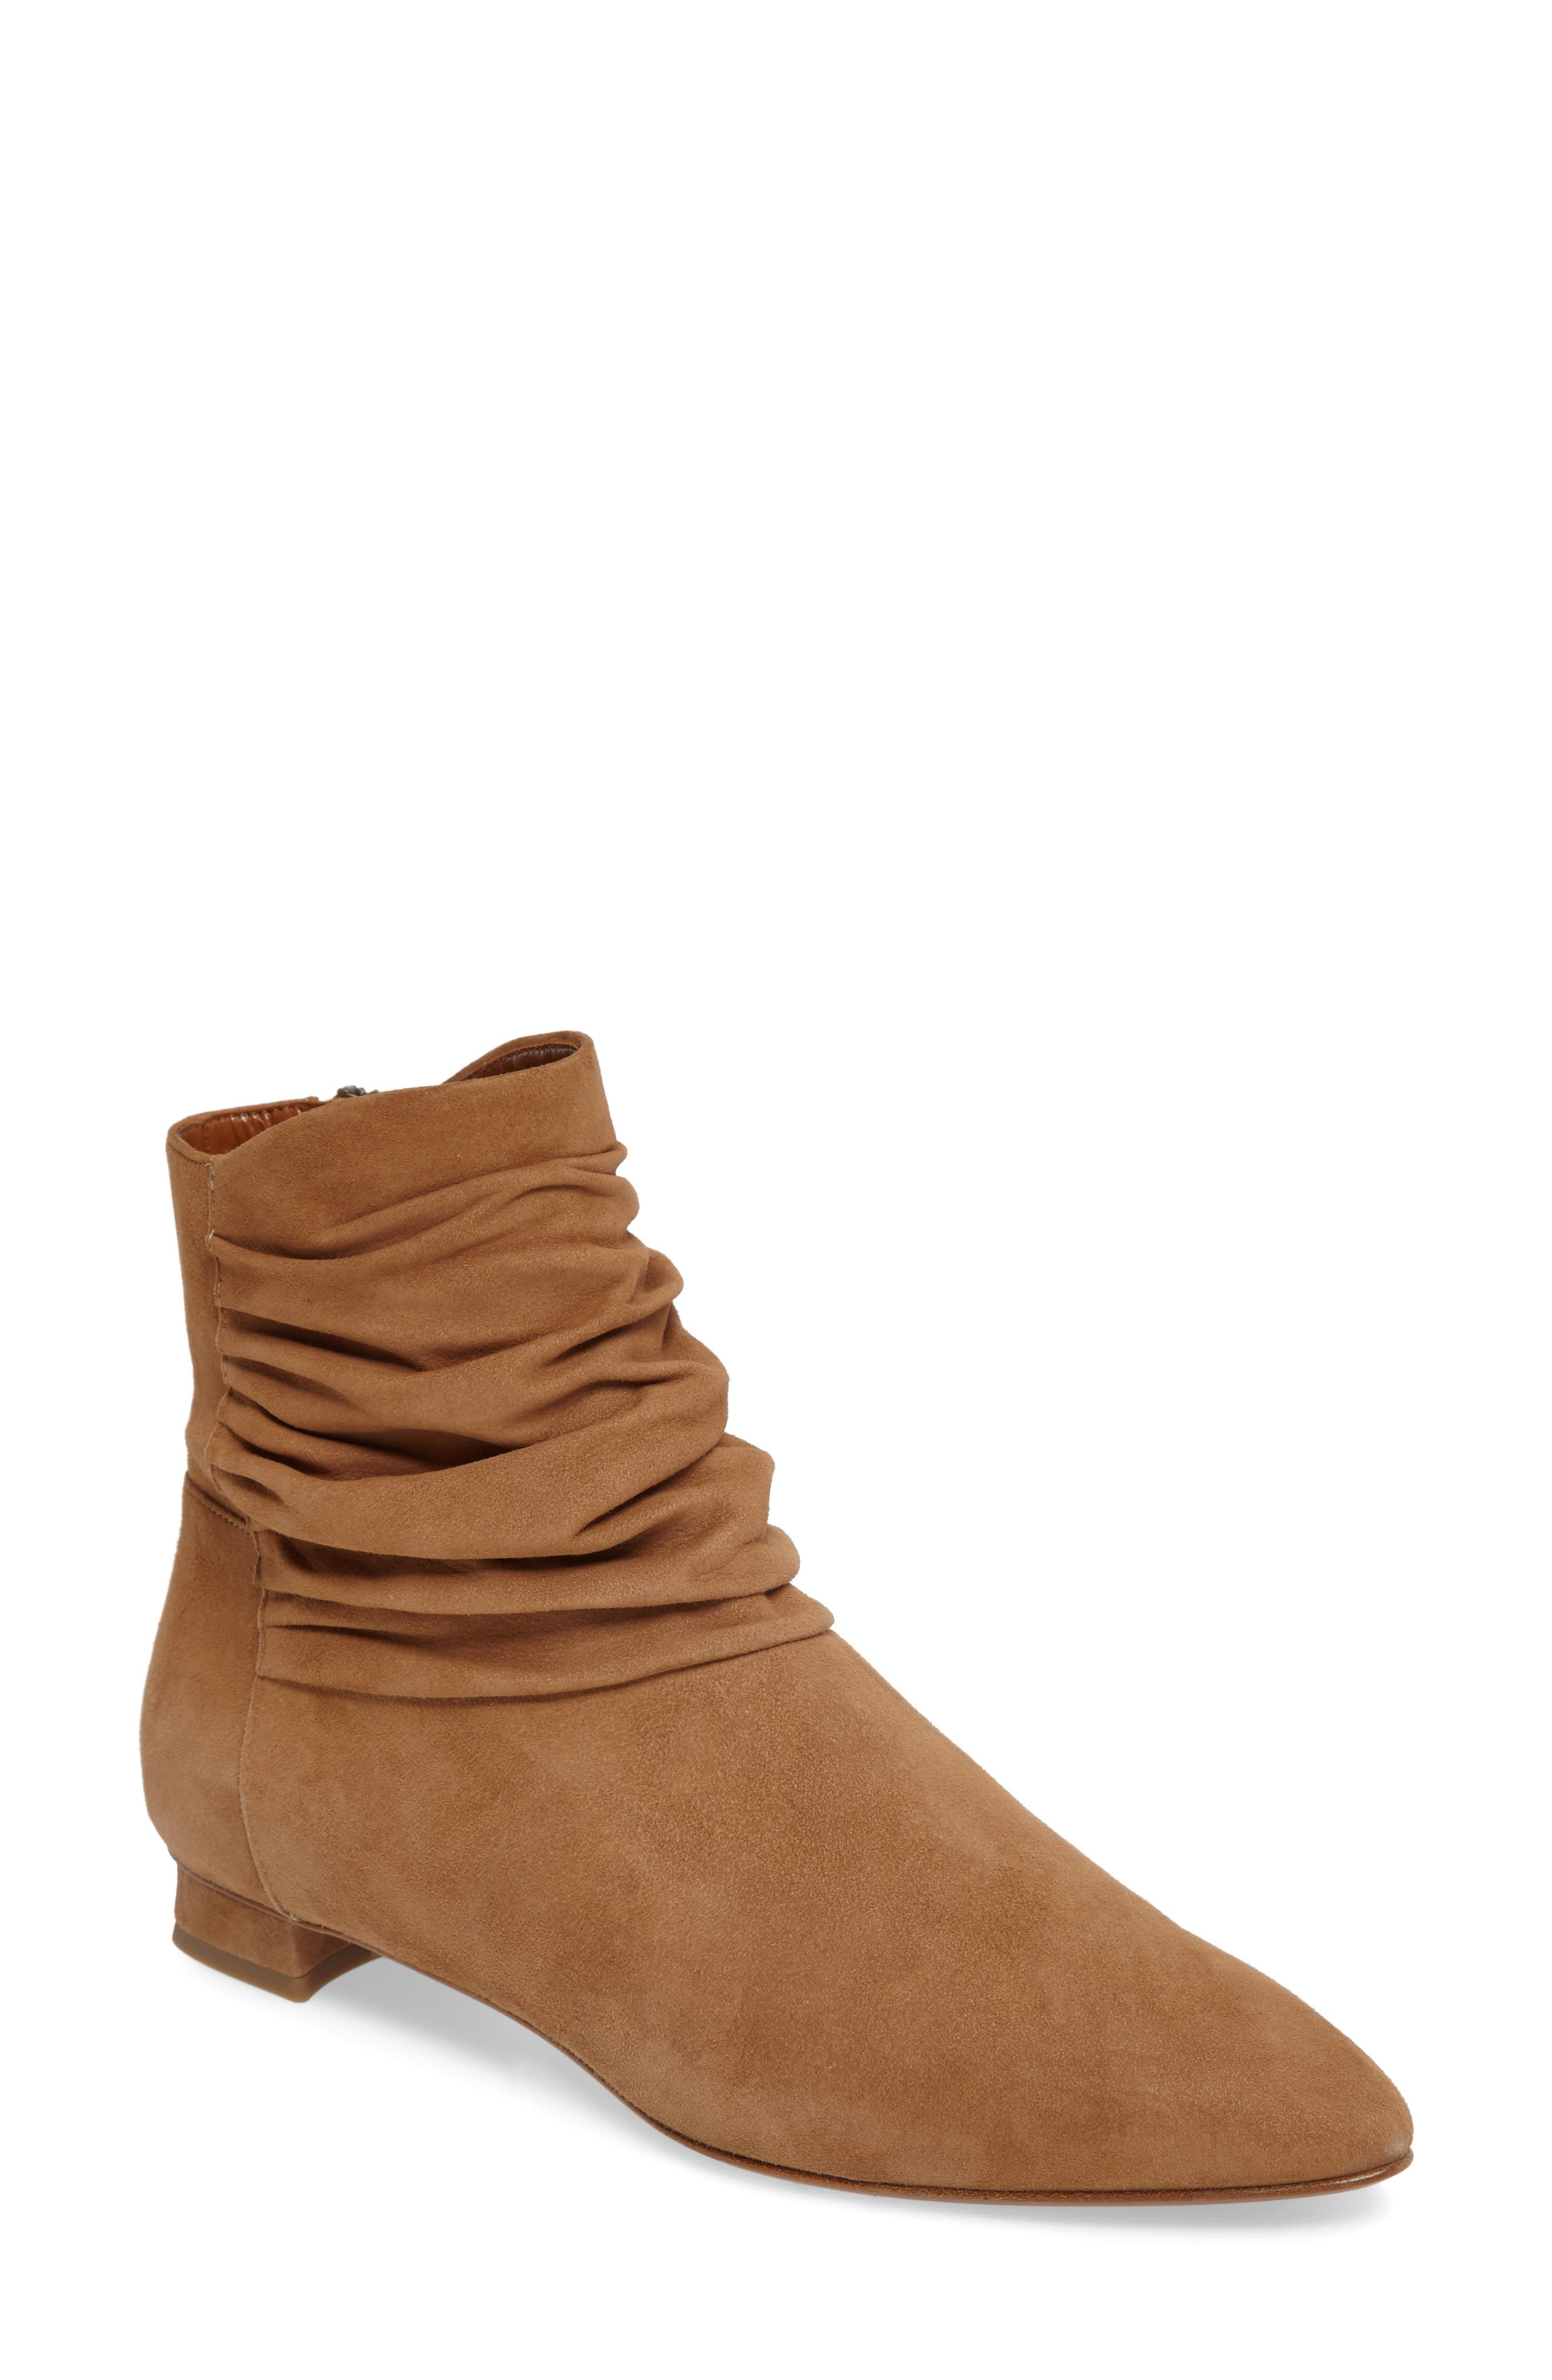 Petra Weatherproof Bootie,                             Main thumbnail 1, color,                             Sand